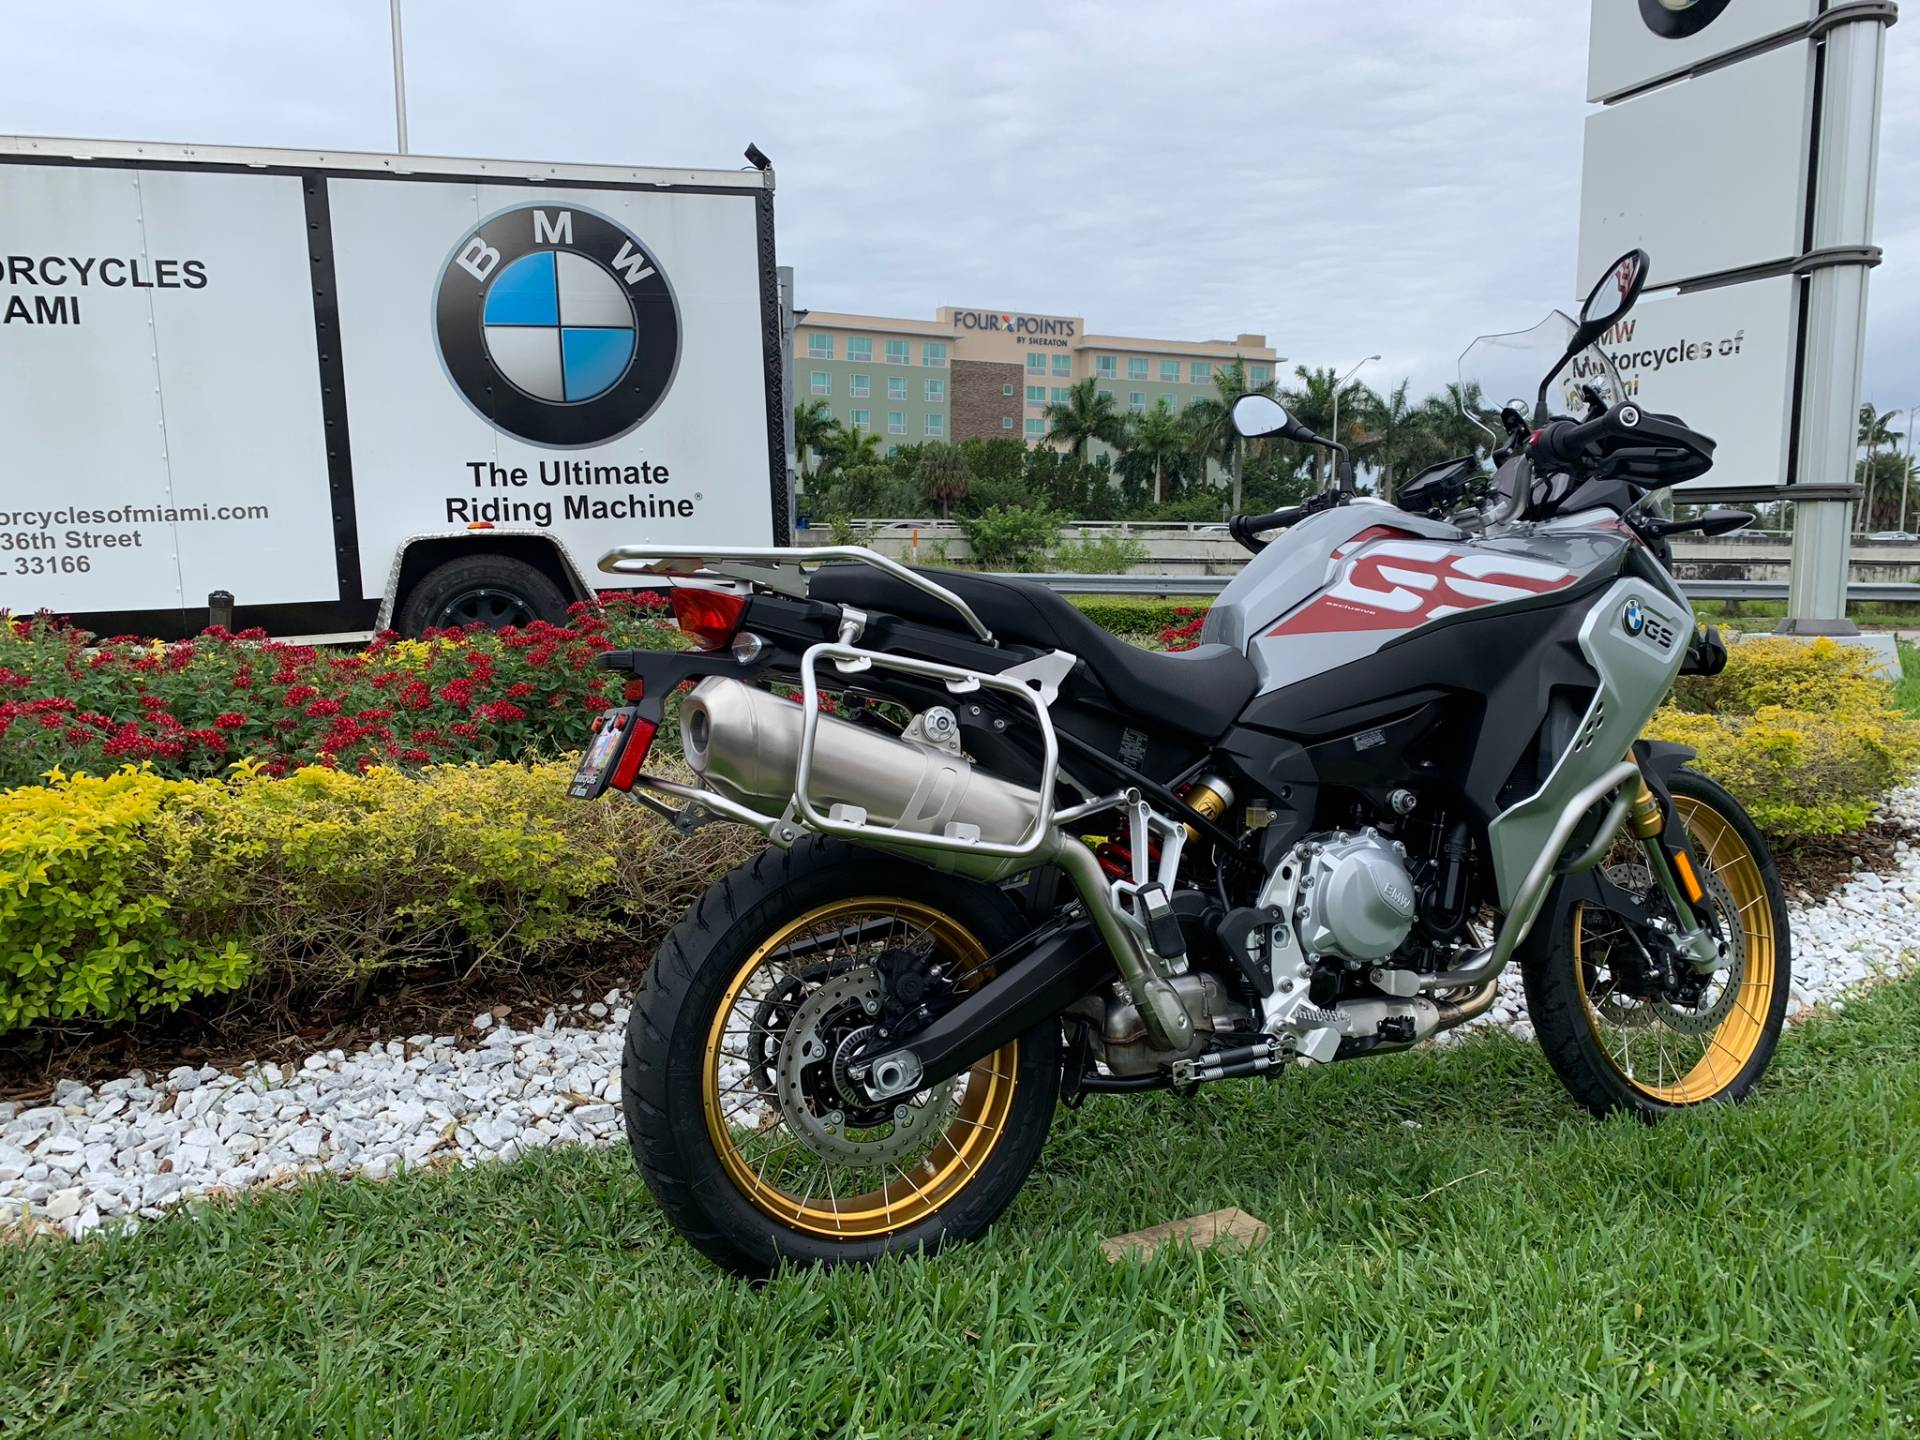 New 2019 BMW F 850 GSA for sale, BMW F 850GSA for sale, BMW Motorcycle F850GSA, new BMW 850 Adventure, Adventure. BMW Motorcycles of Miami, Motorcycles of Miami, Motorcycles Miami, New Motorcycles, Used Motorcycles, pre-owned. #BMWMotorcyclesOfMiami #MotorcyclesOfMiami #MotorcyclesMiami - Photo 26